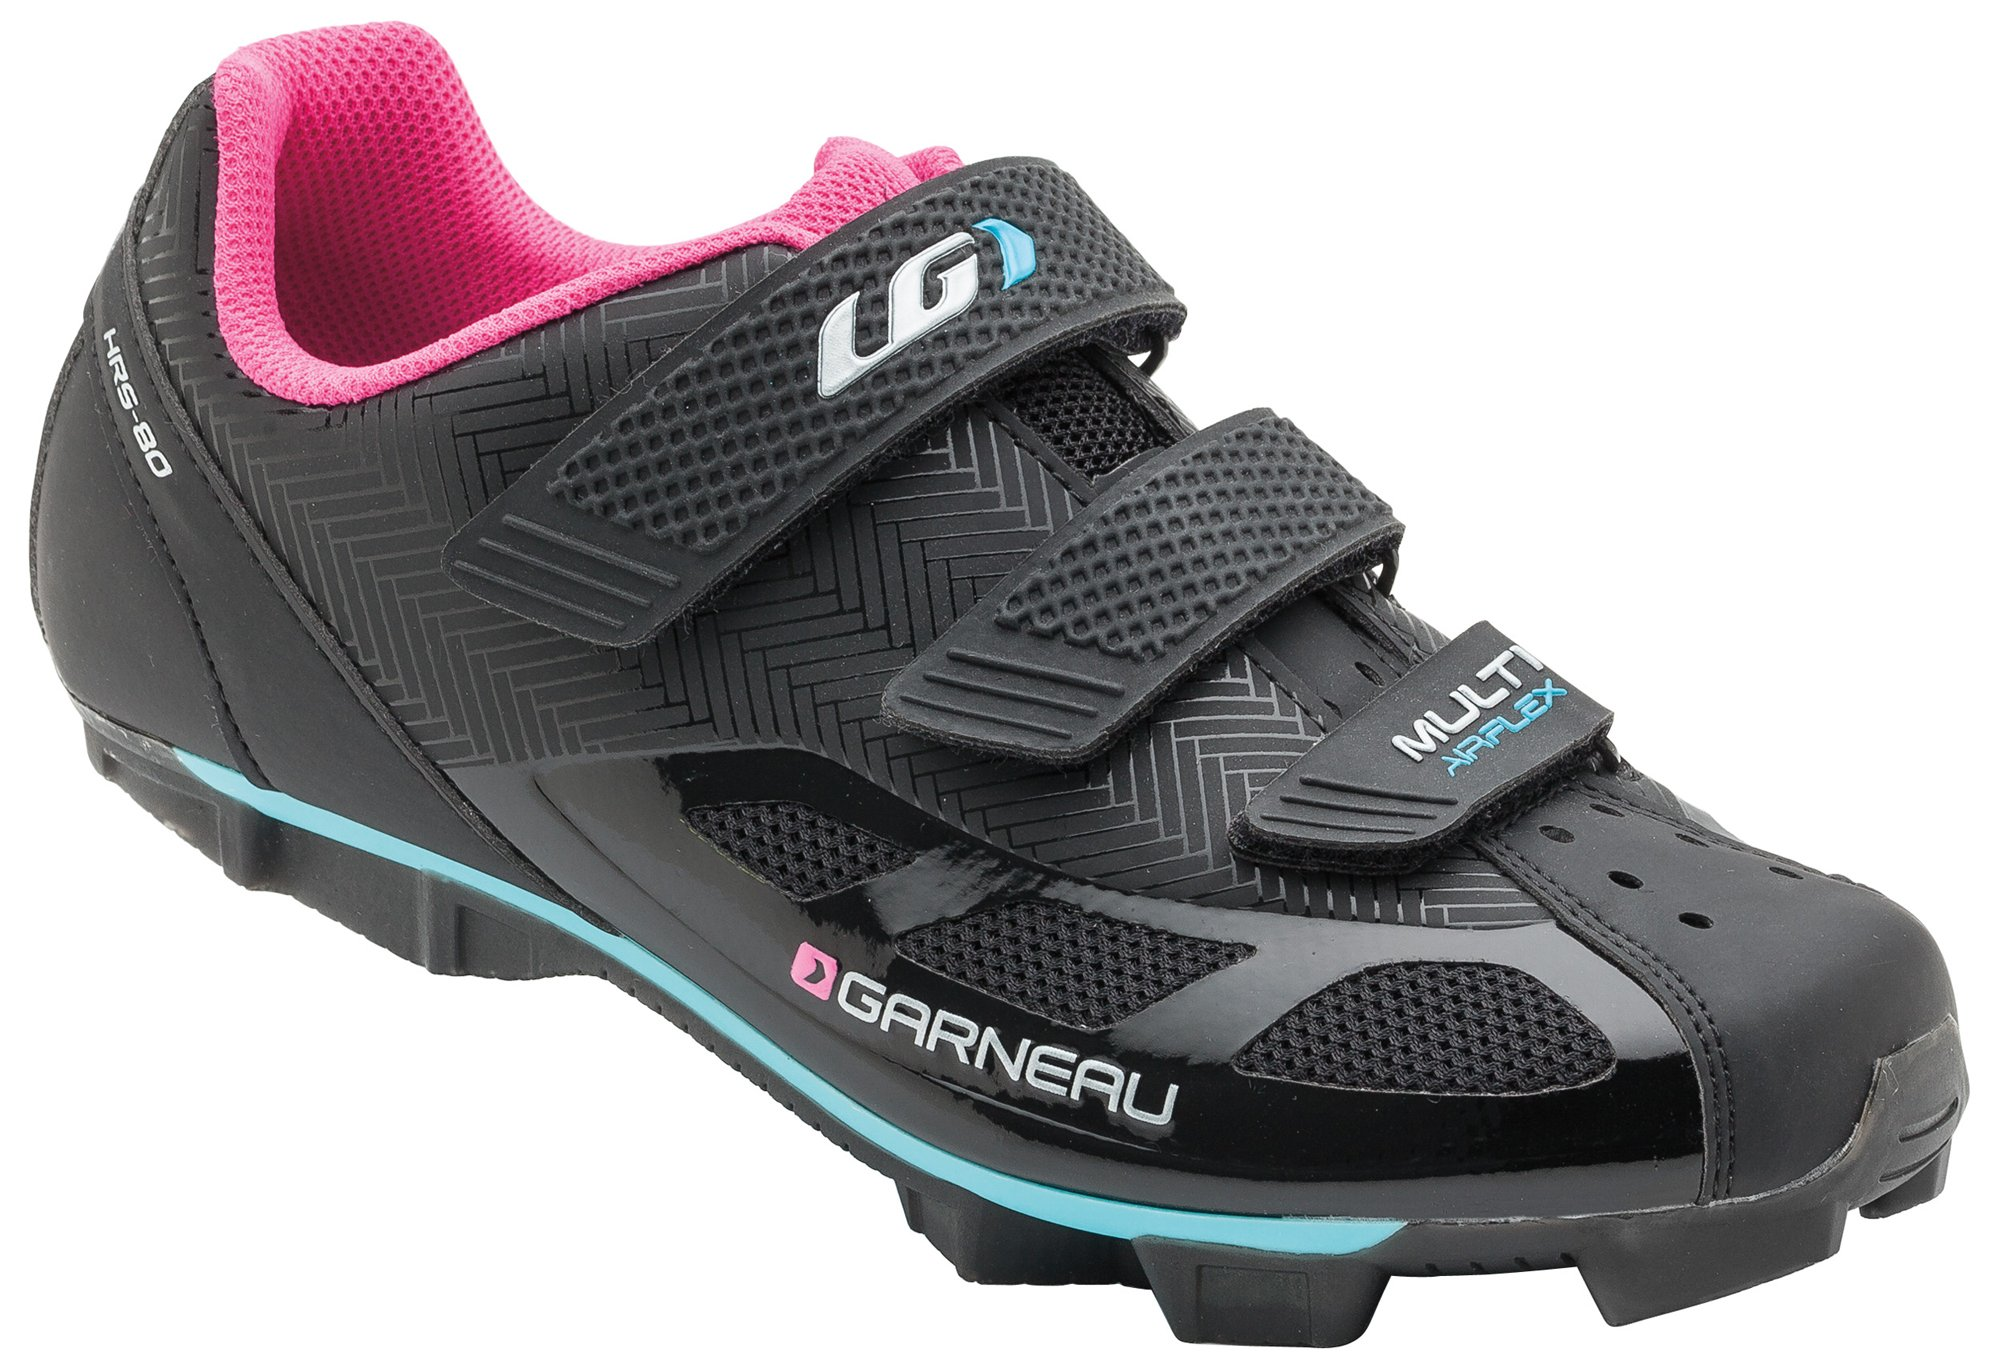 Louis Garneau - Women's Multi Air Flex Bike Shoes, Black/Pink, US (9), EU (40)